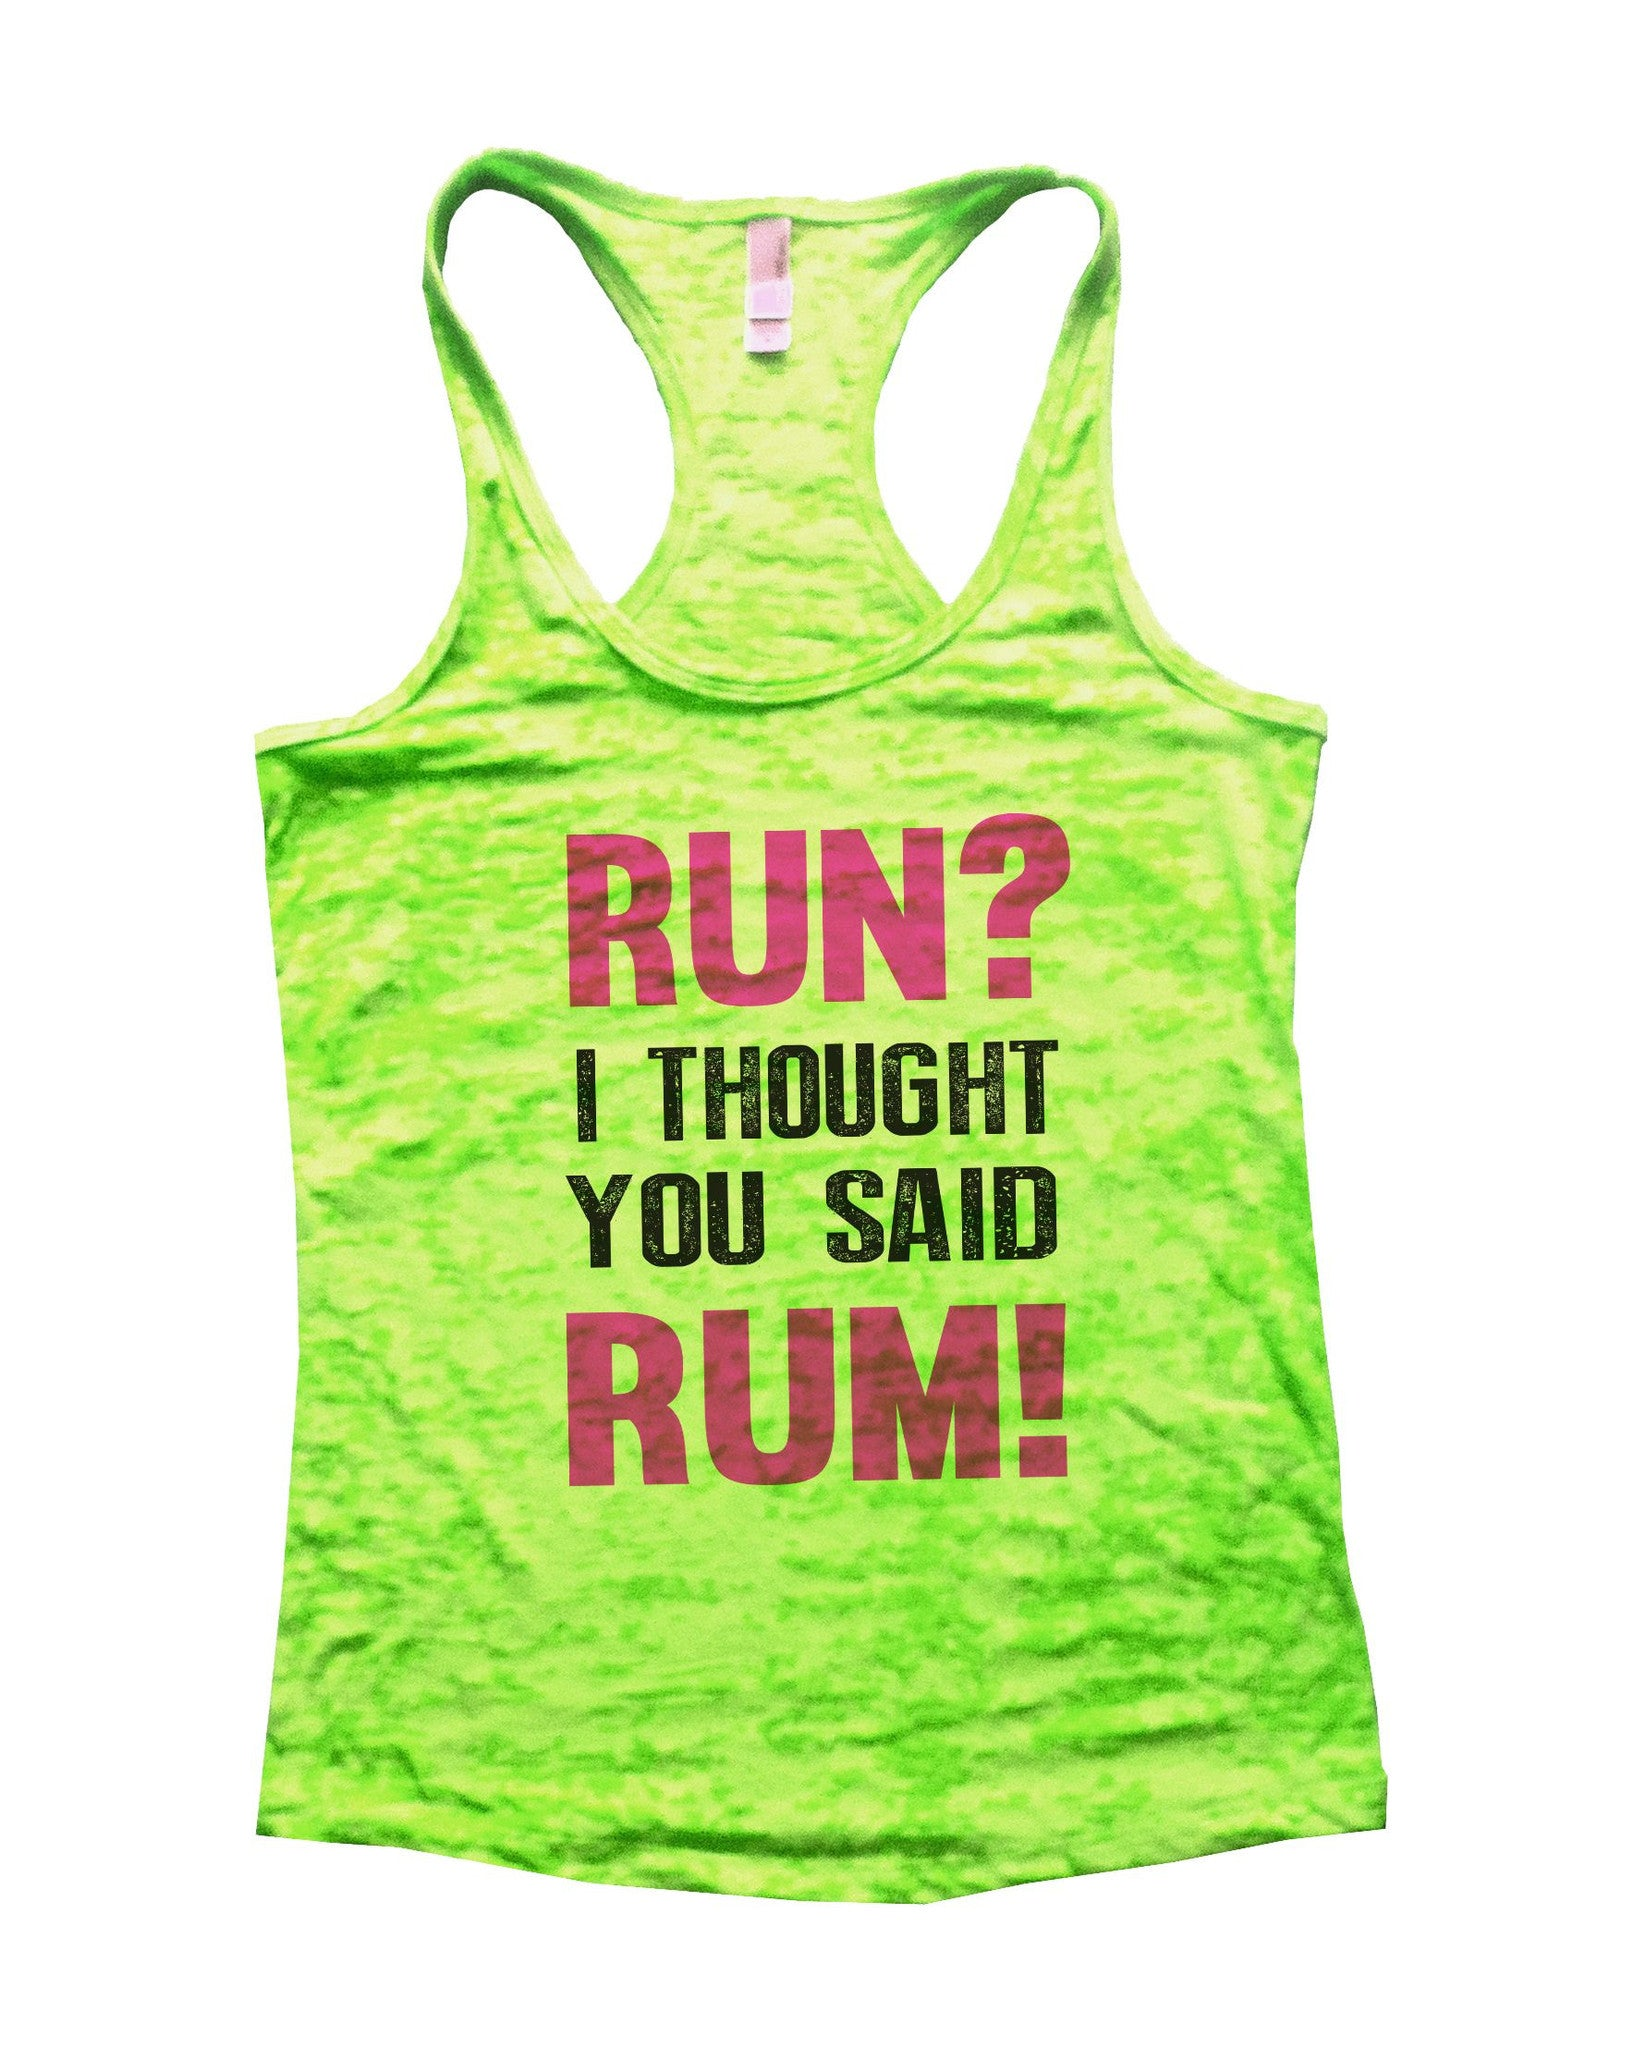 Run? I Thought You Said Rum! Burnout Tank Top By BurnoutTankTops.com - 958 - Funny Shirts Tank Tops Burnouts and Triblends  - 1